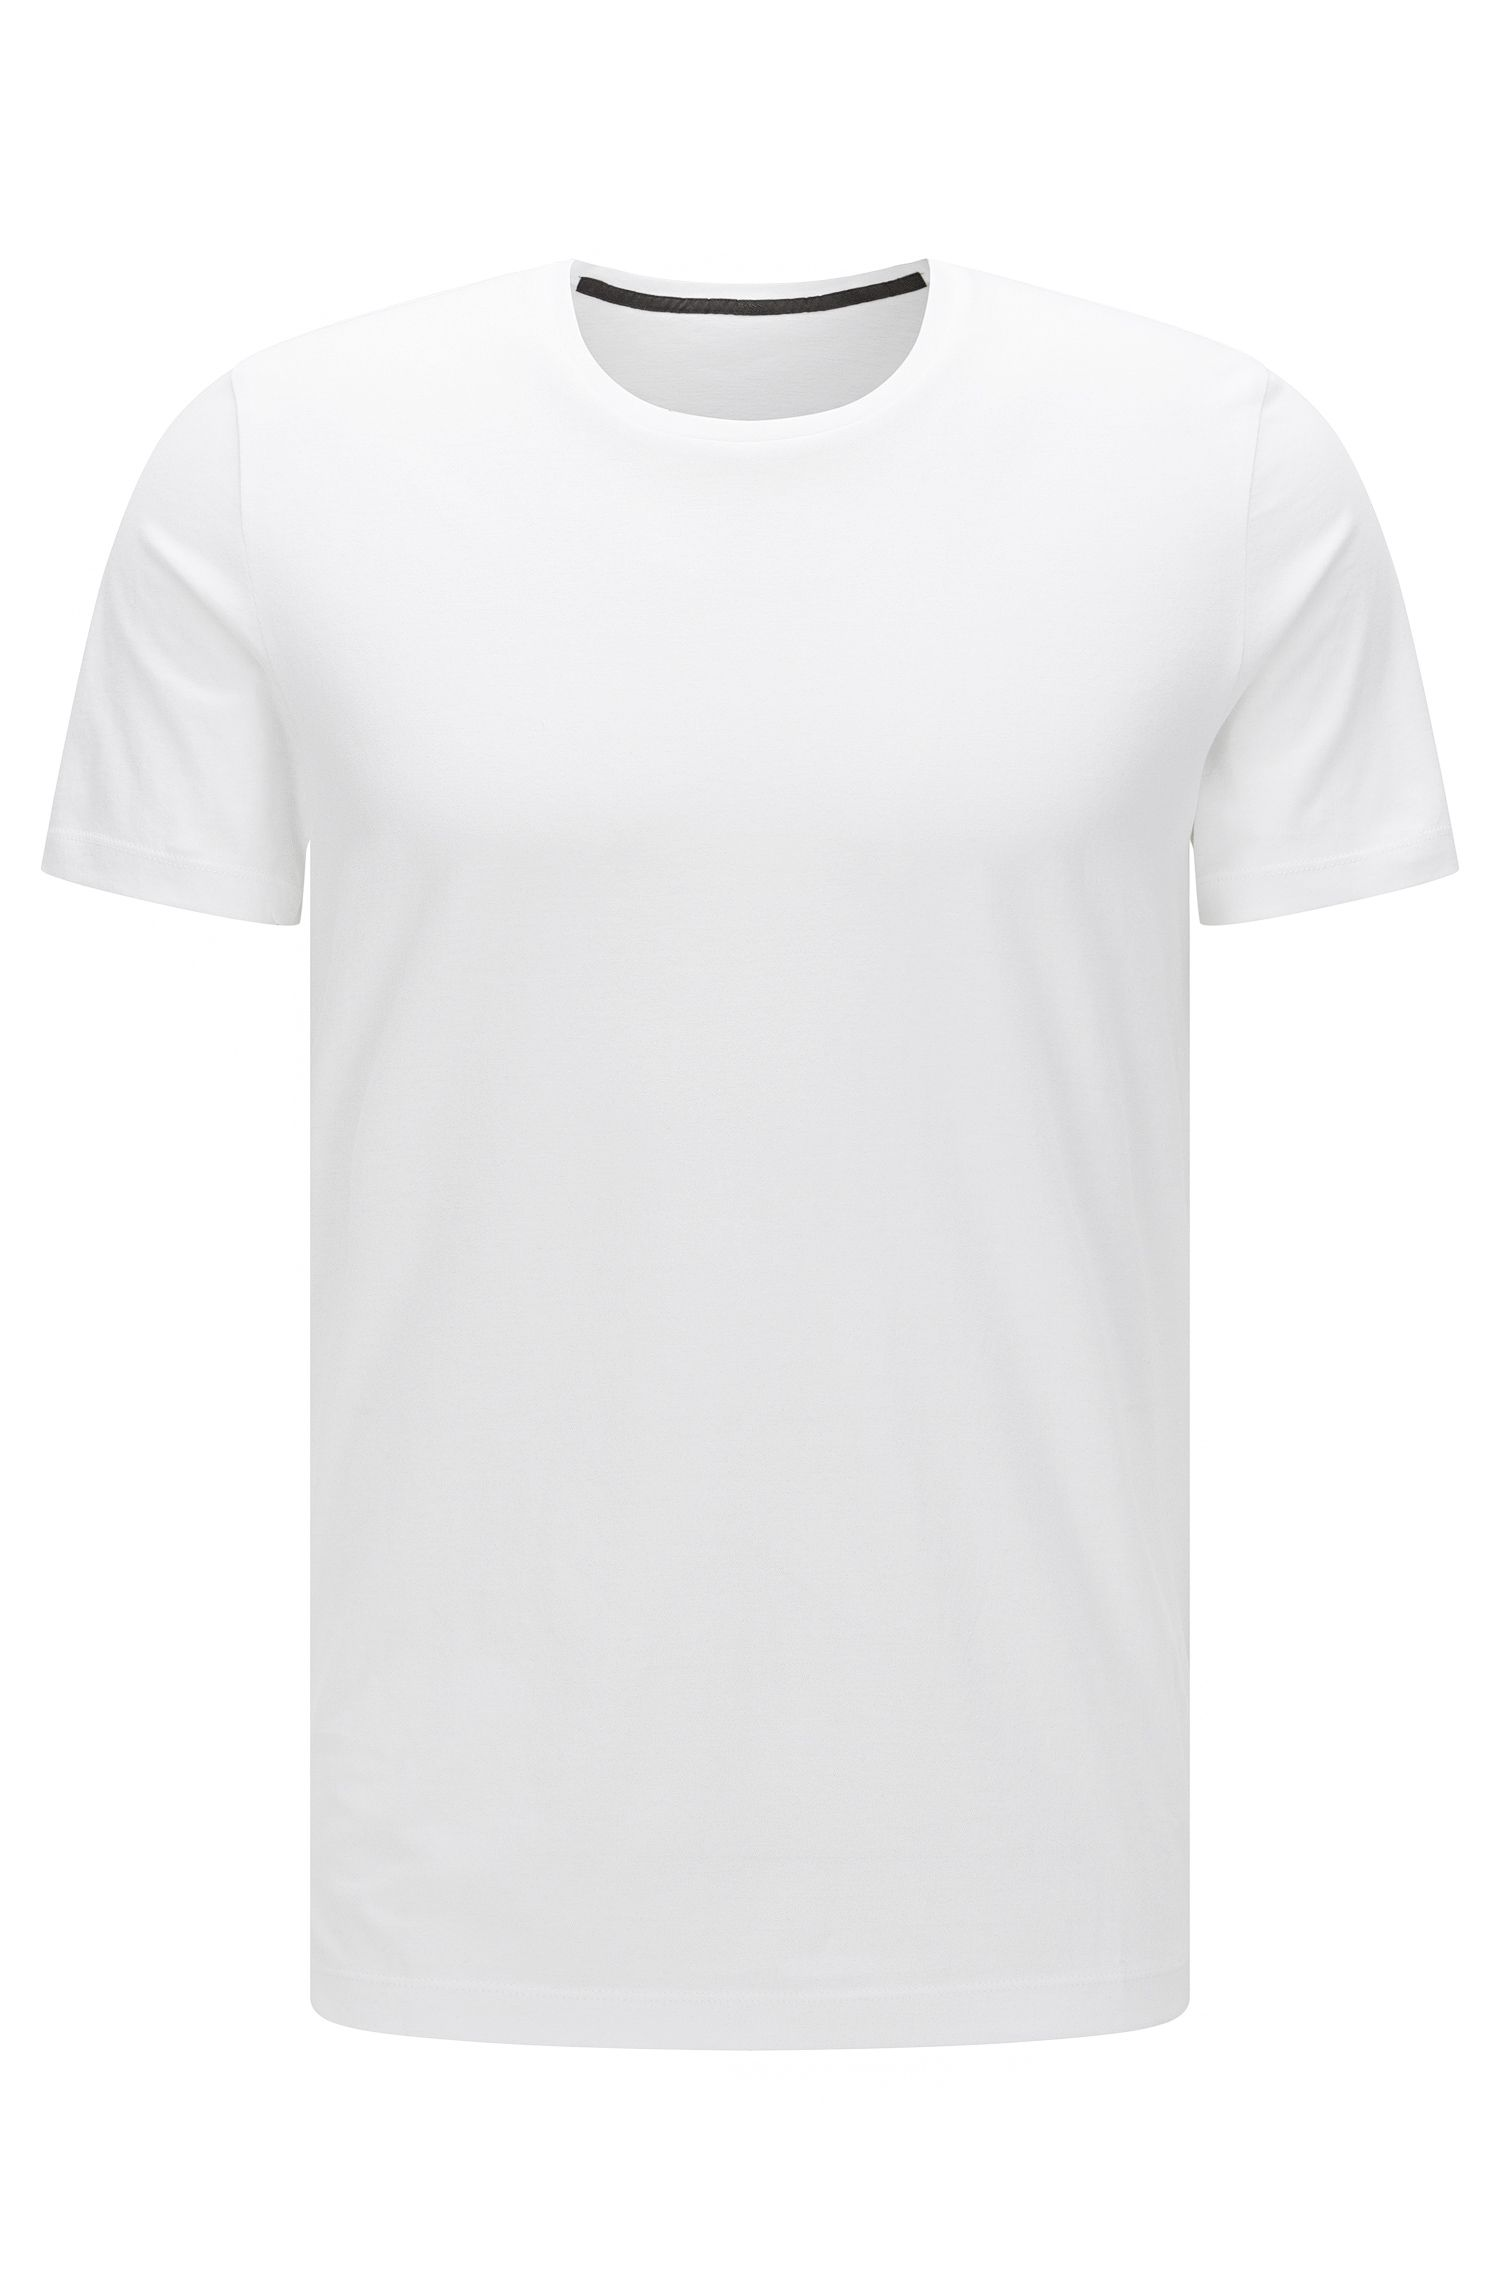 Slim-fit T-shirt in soft cotton jersey